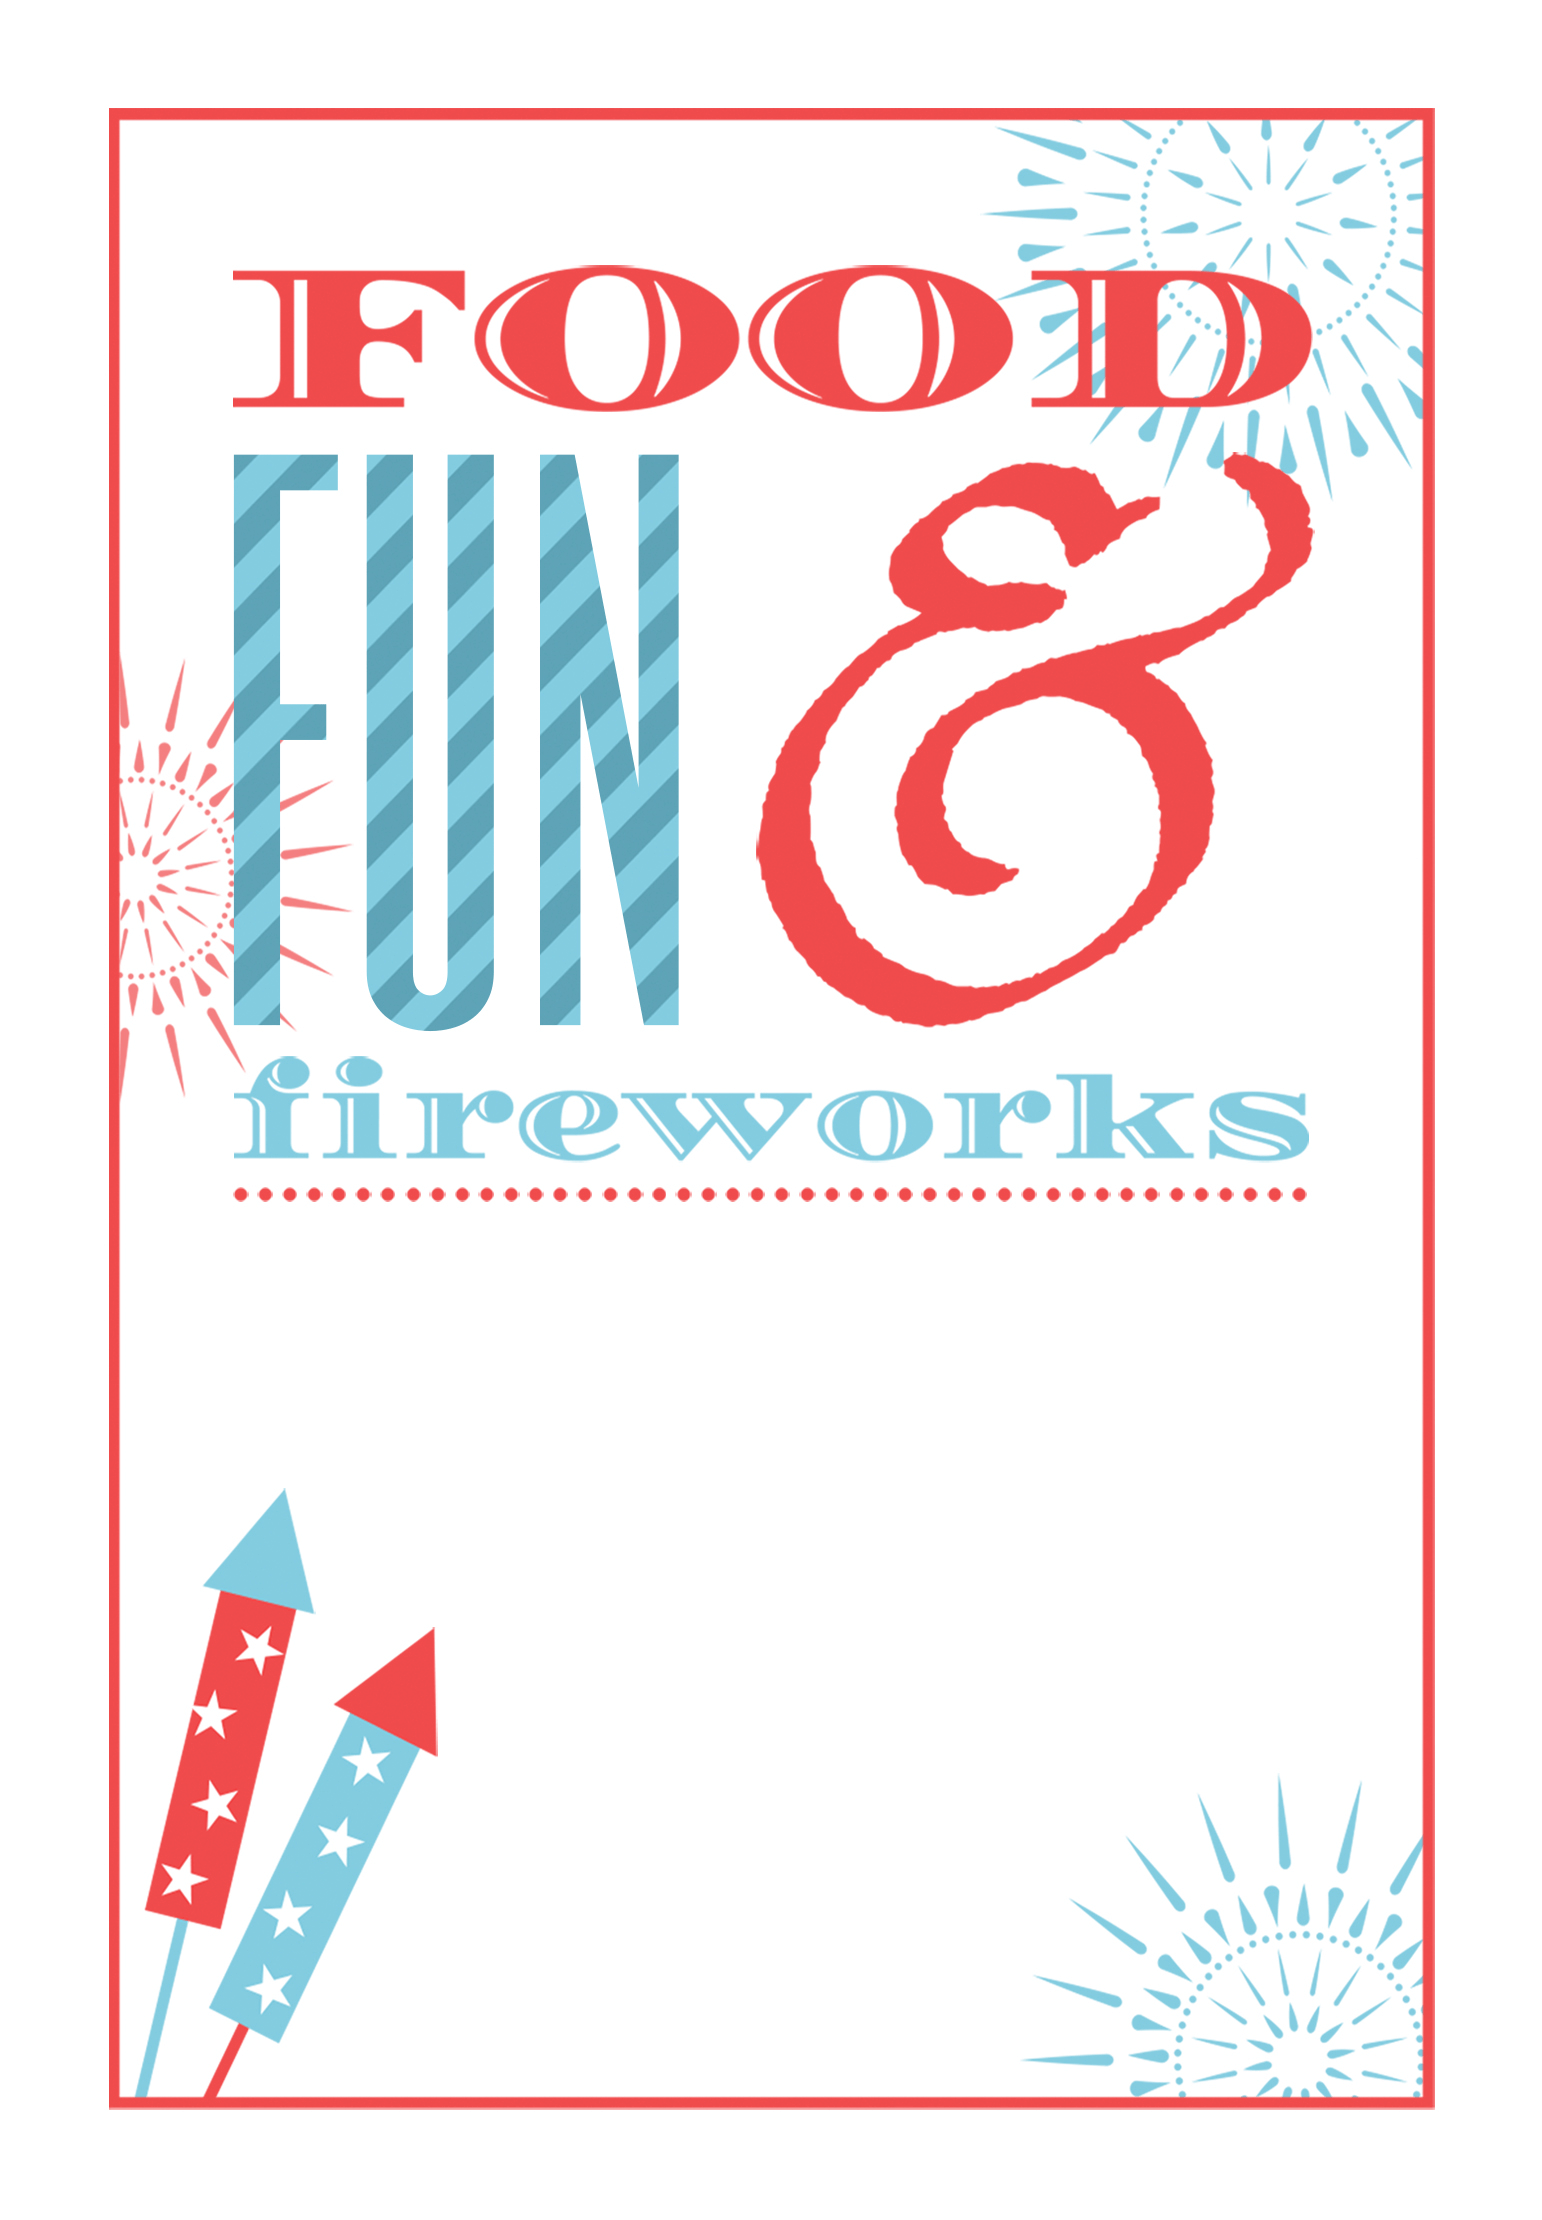 Food Fun And Fireworks Free Printable 4th Of July Invitation Template Greetings Island Invitation Printing Invitation Template Fireworks Invitation